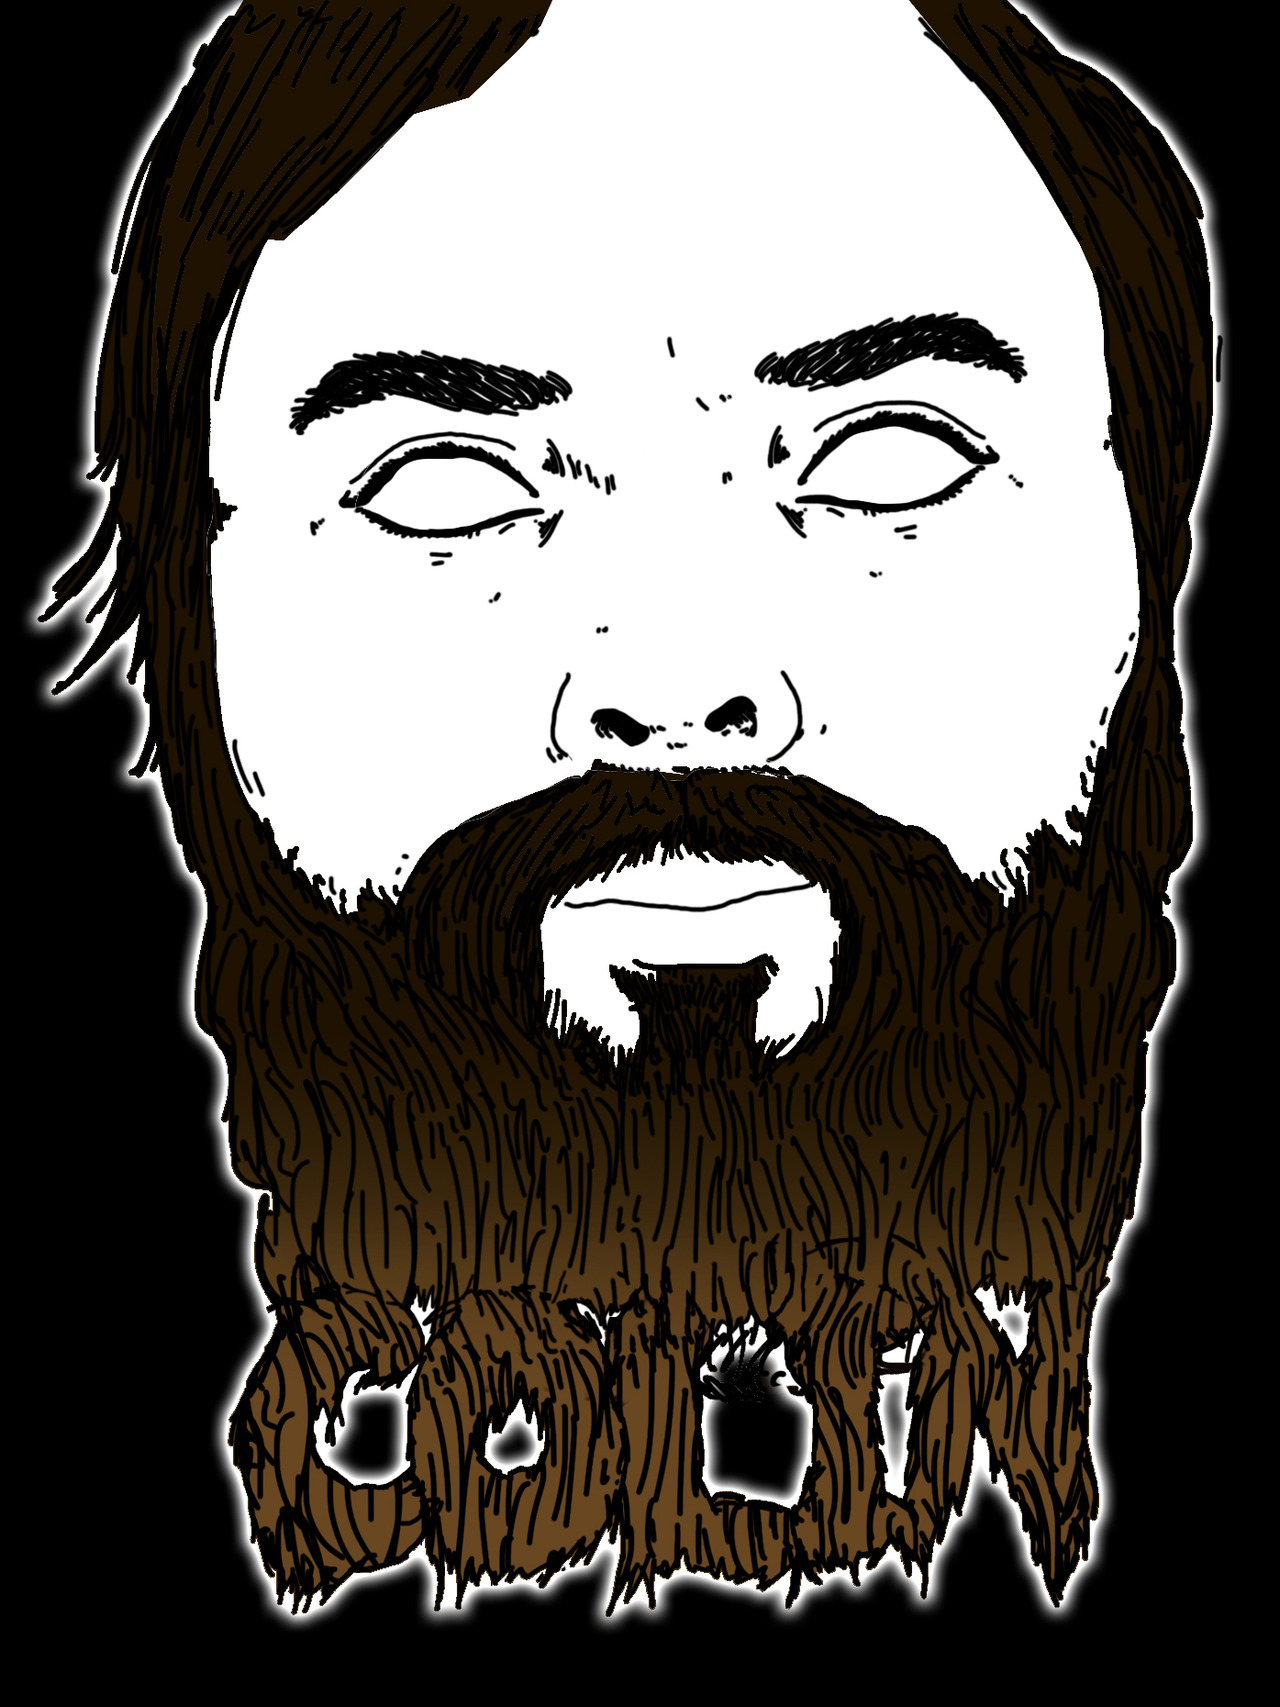 COLIN. [COLLAB WITH DOODLEHEART, http://www.facebook.com/DoodleheartIllustration]